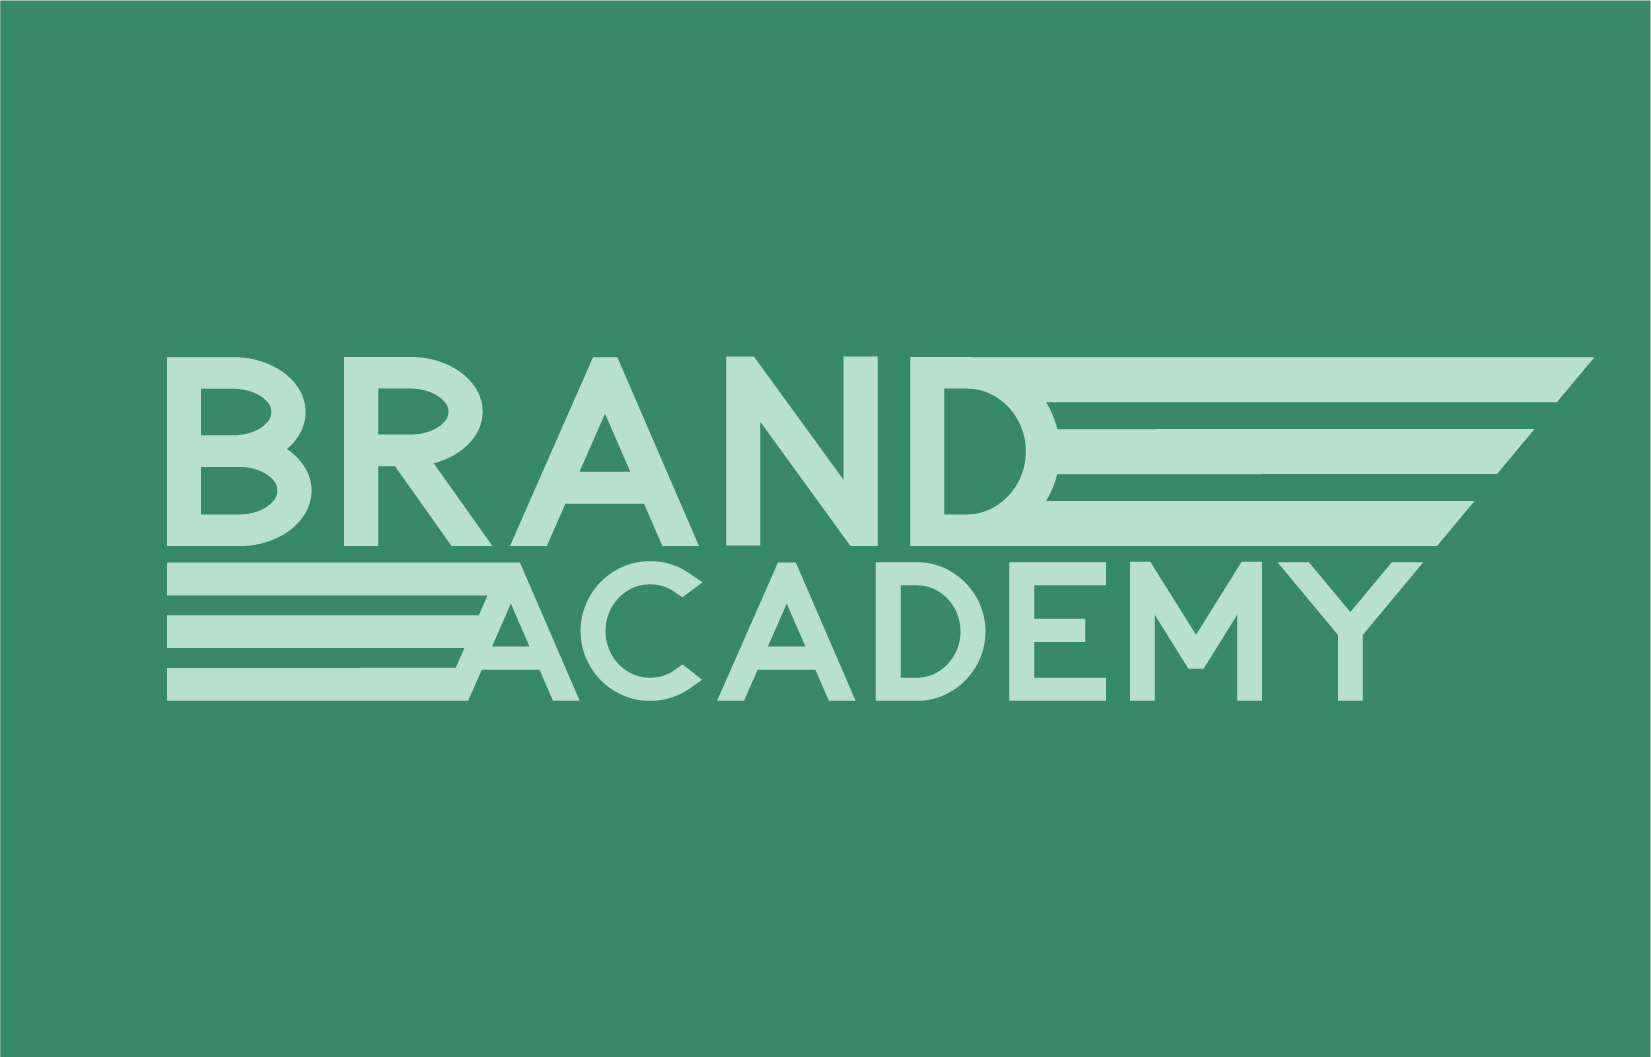 Brand Acadamy Logo_Green on Green_Cover Page.jpg